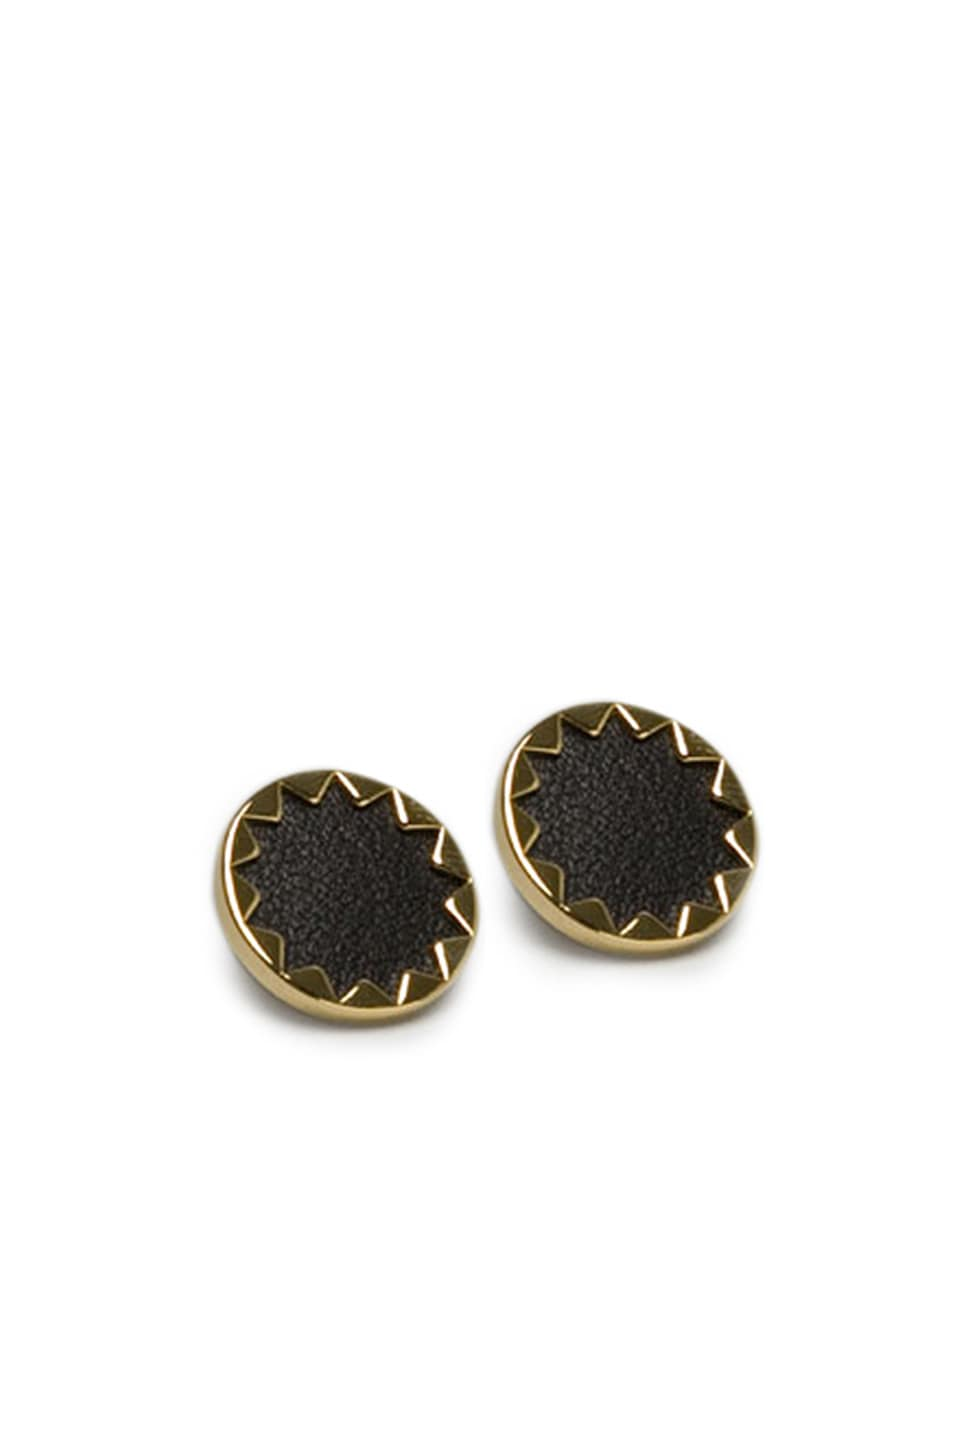 House of Harlow 1960 House of Harlow Sunburst Button Earrings with Black Leather in Gold